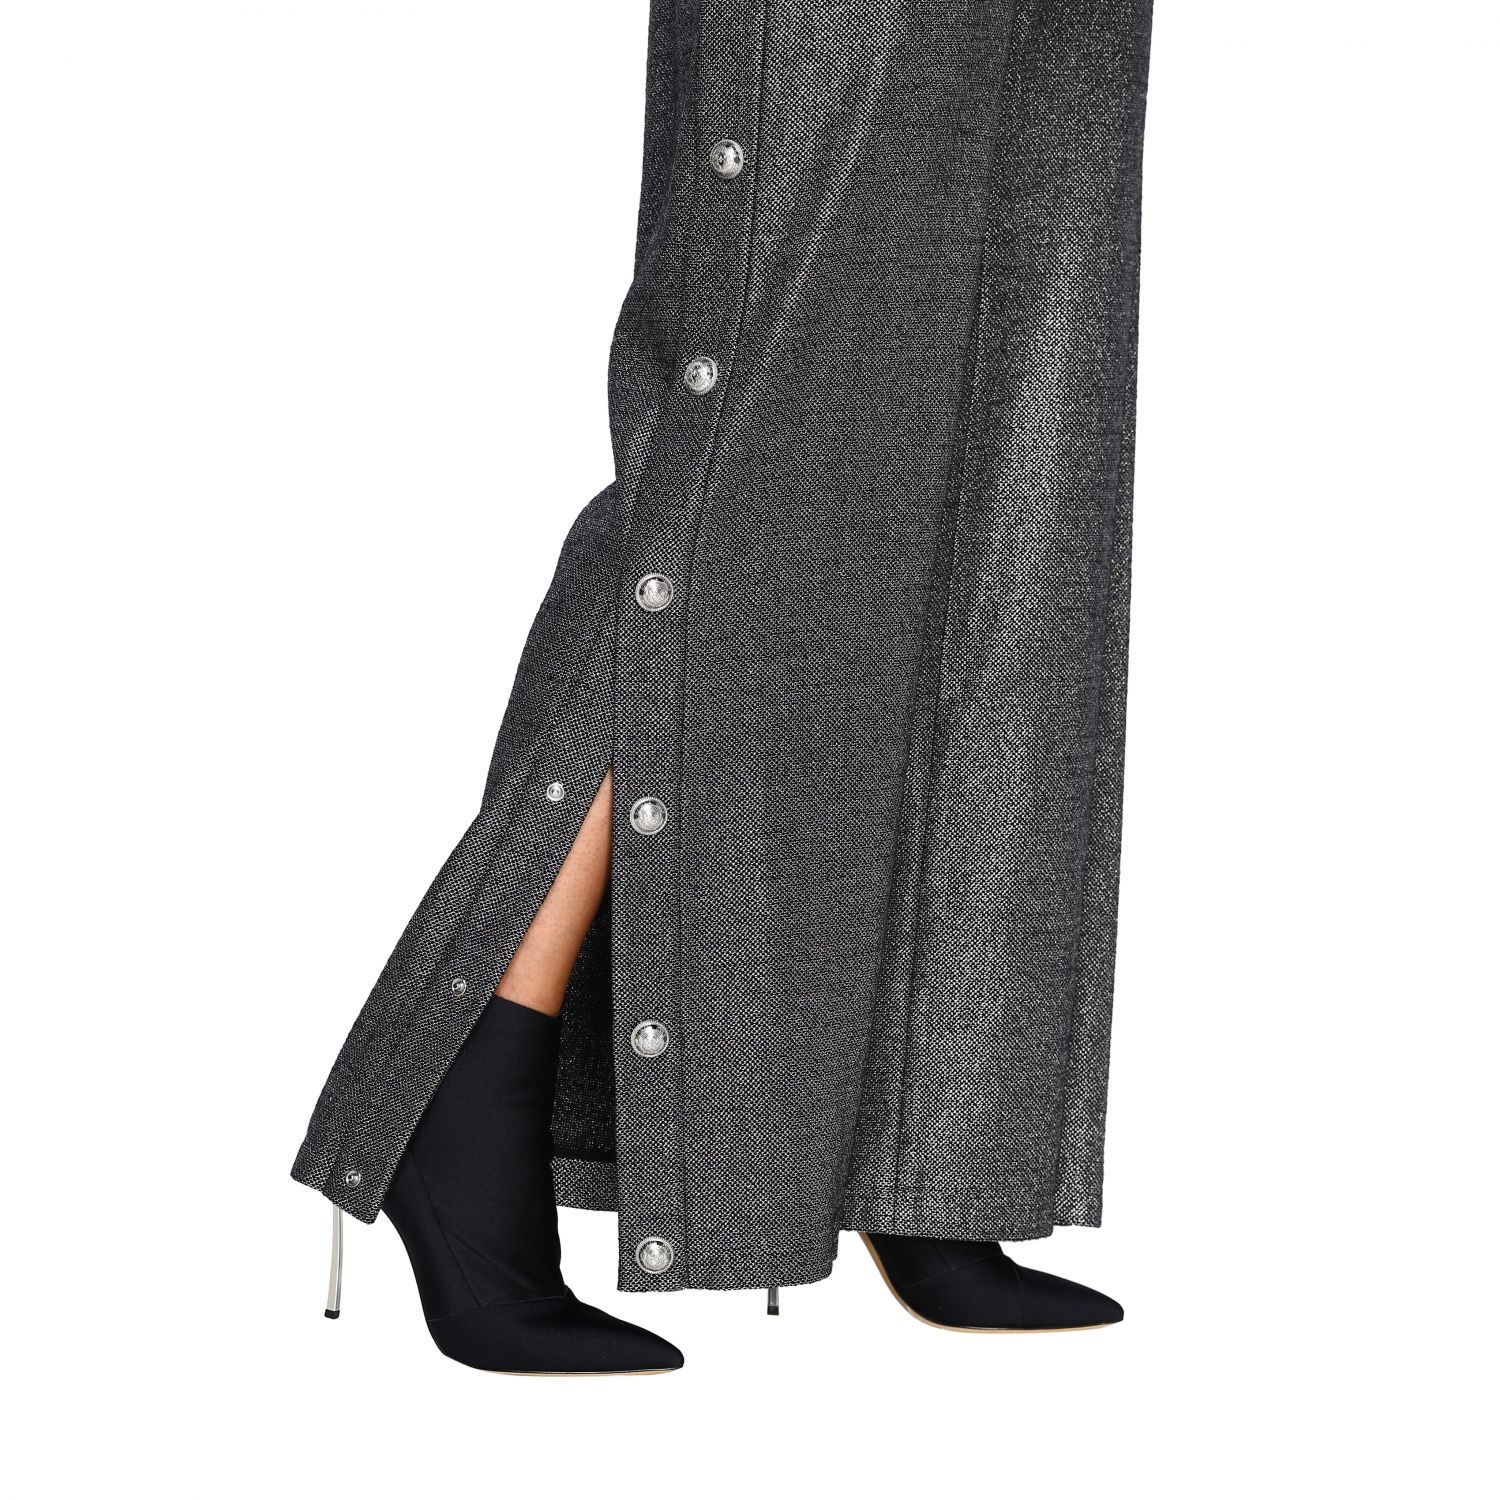 Trousers Balmain: Wide Balmain trousers in lurex knit with jewel buttons black 5